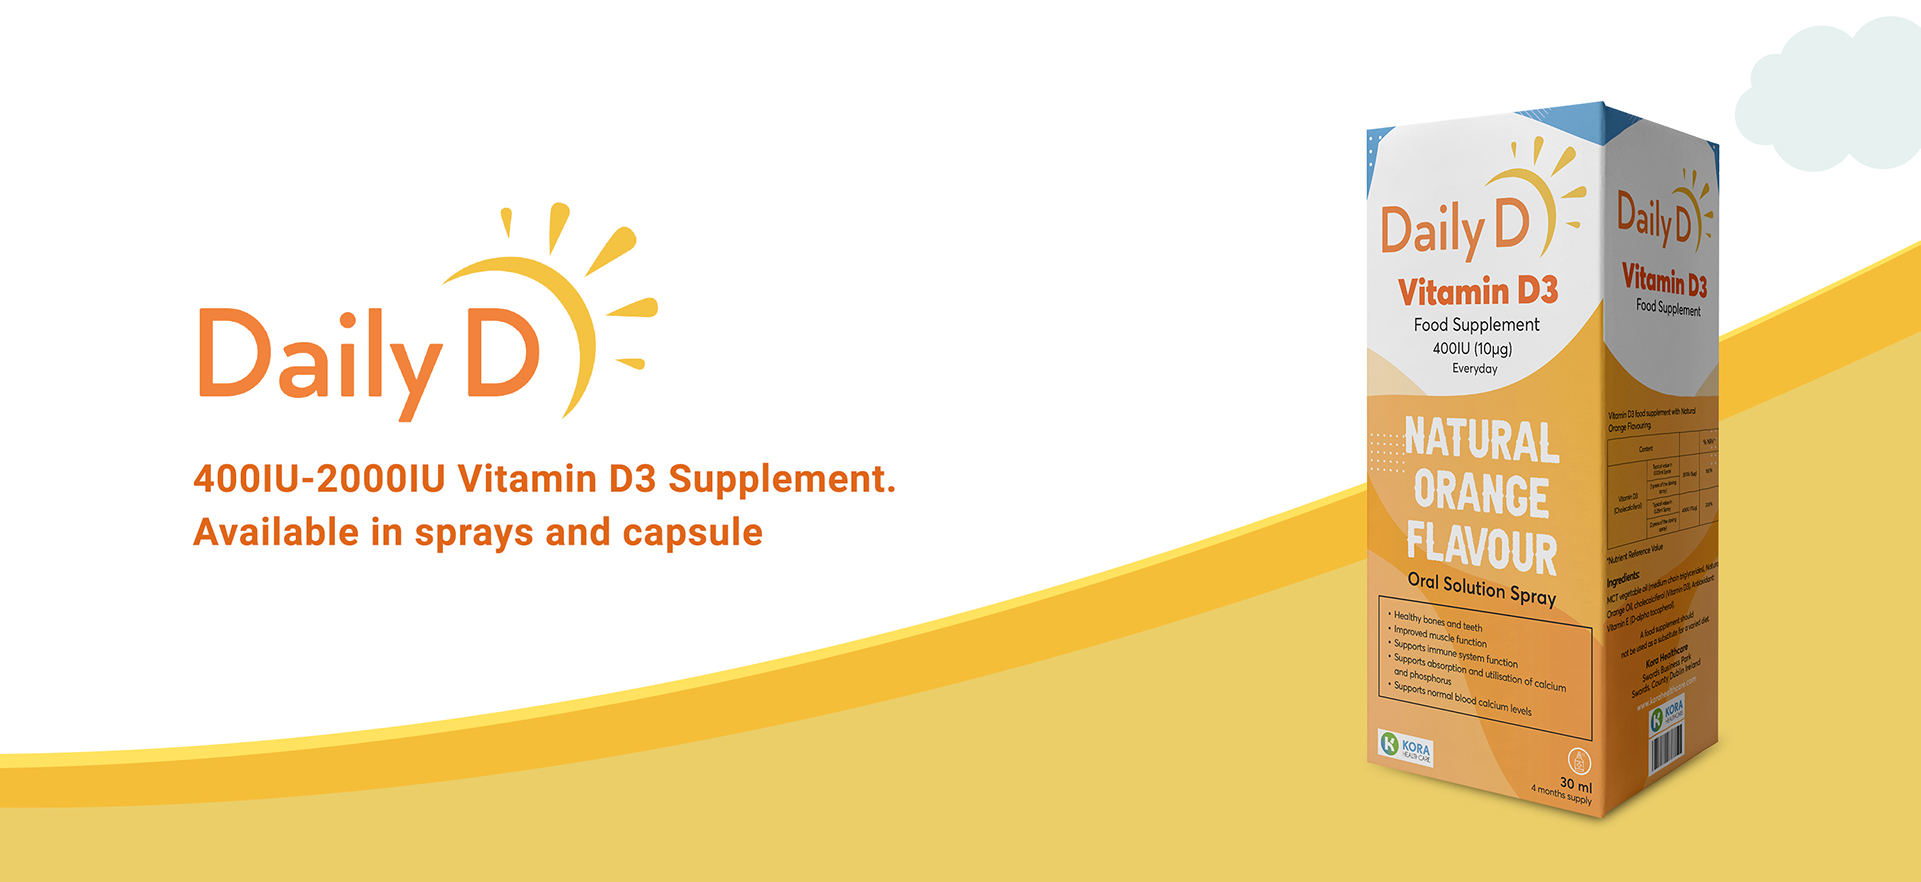 DailyD VitaminD